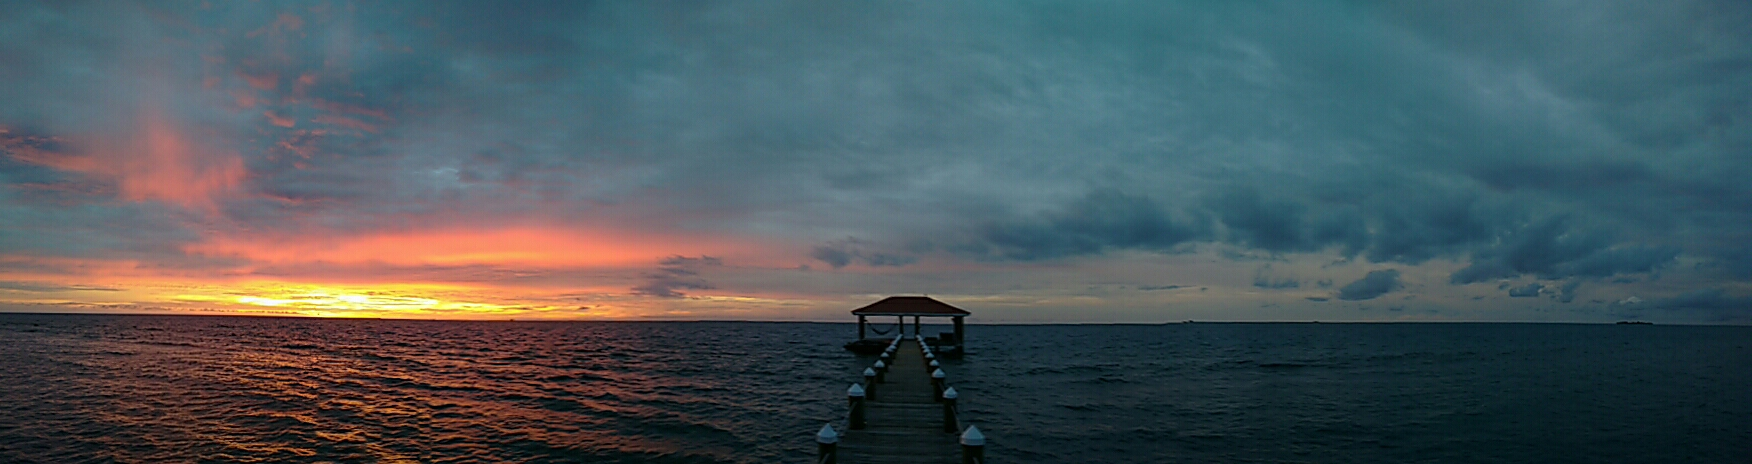 Sunrise on Hatchet Caye, Belize